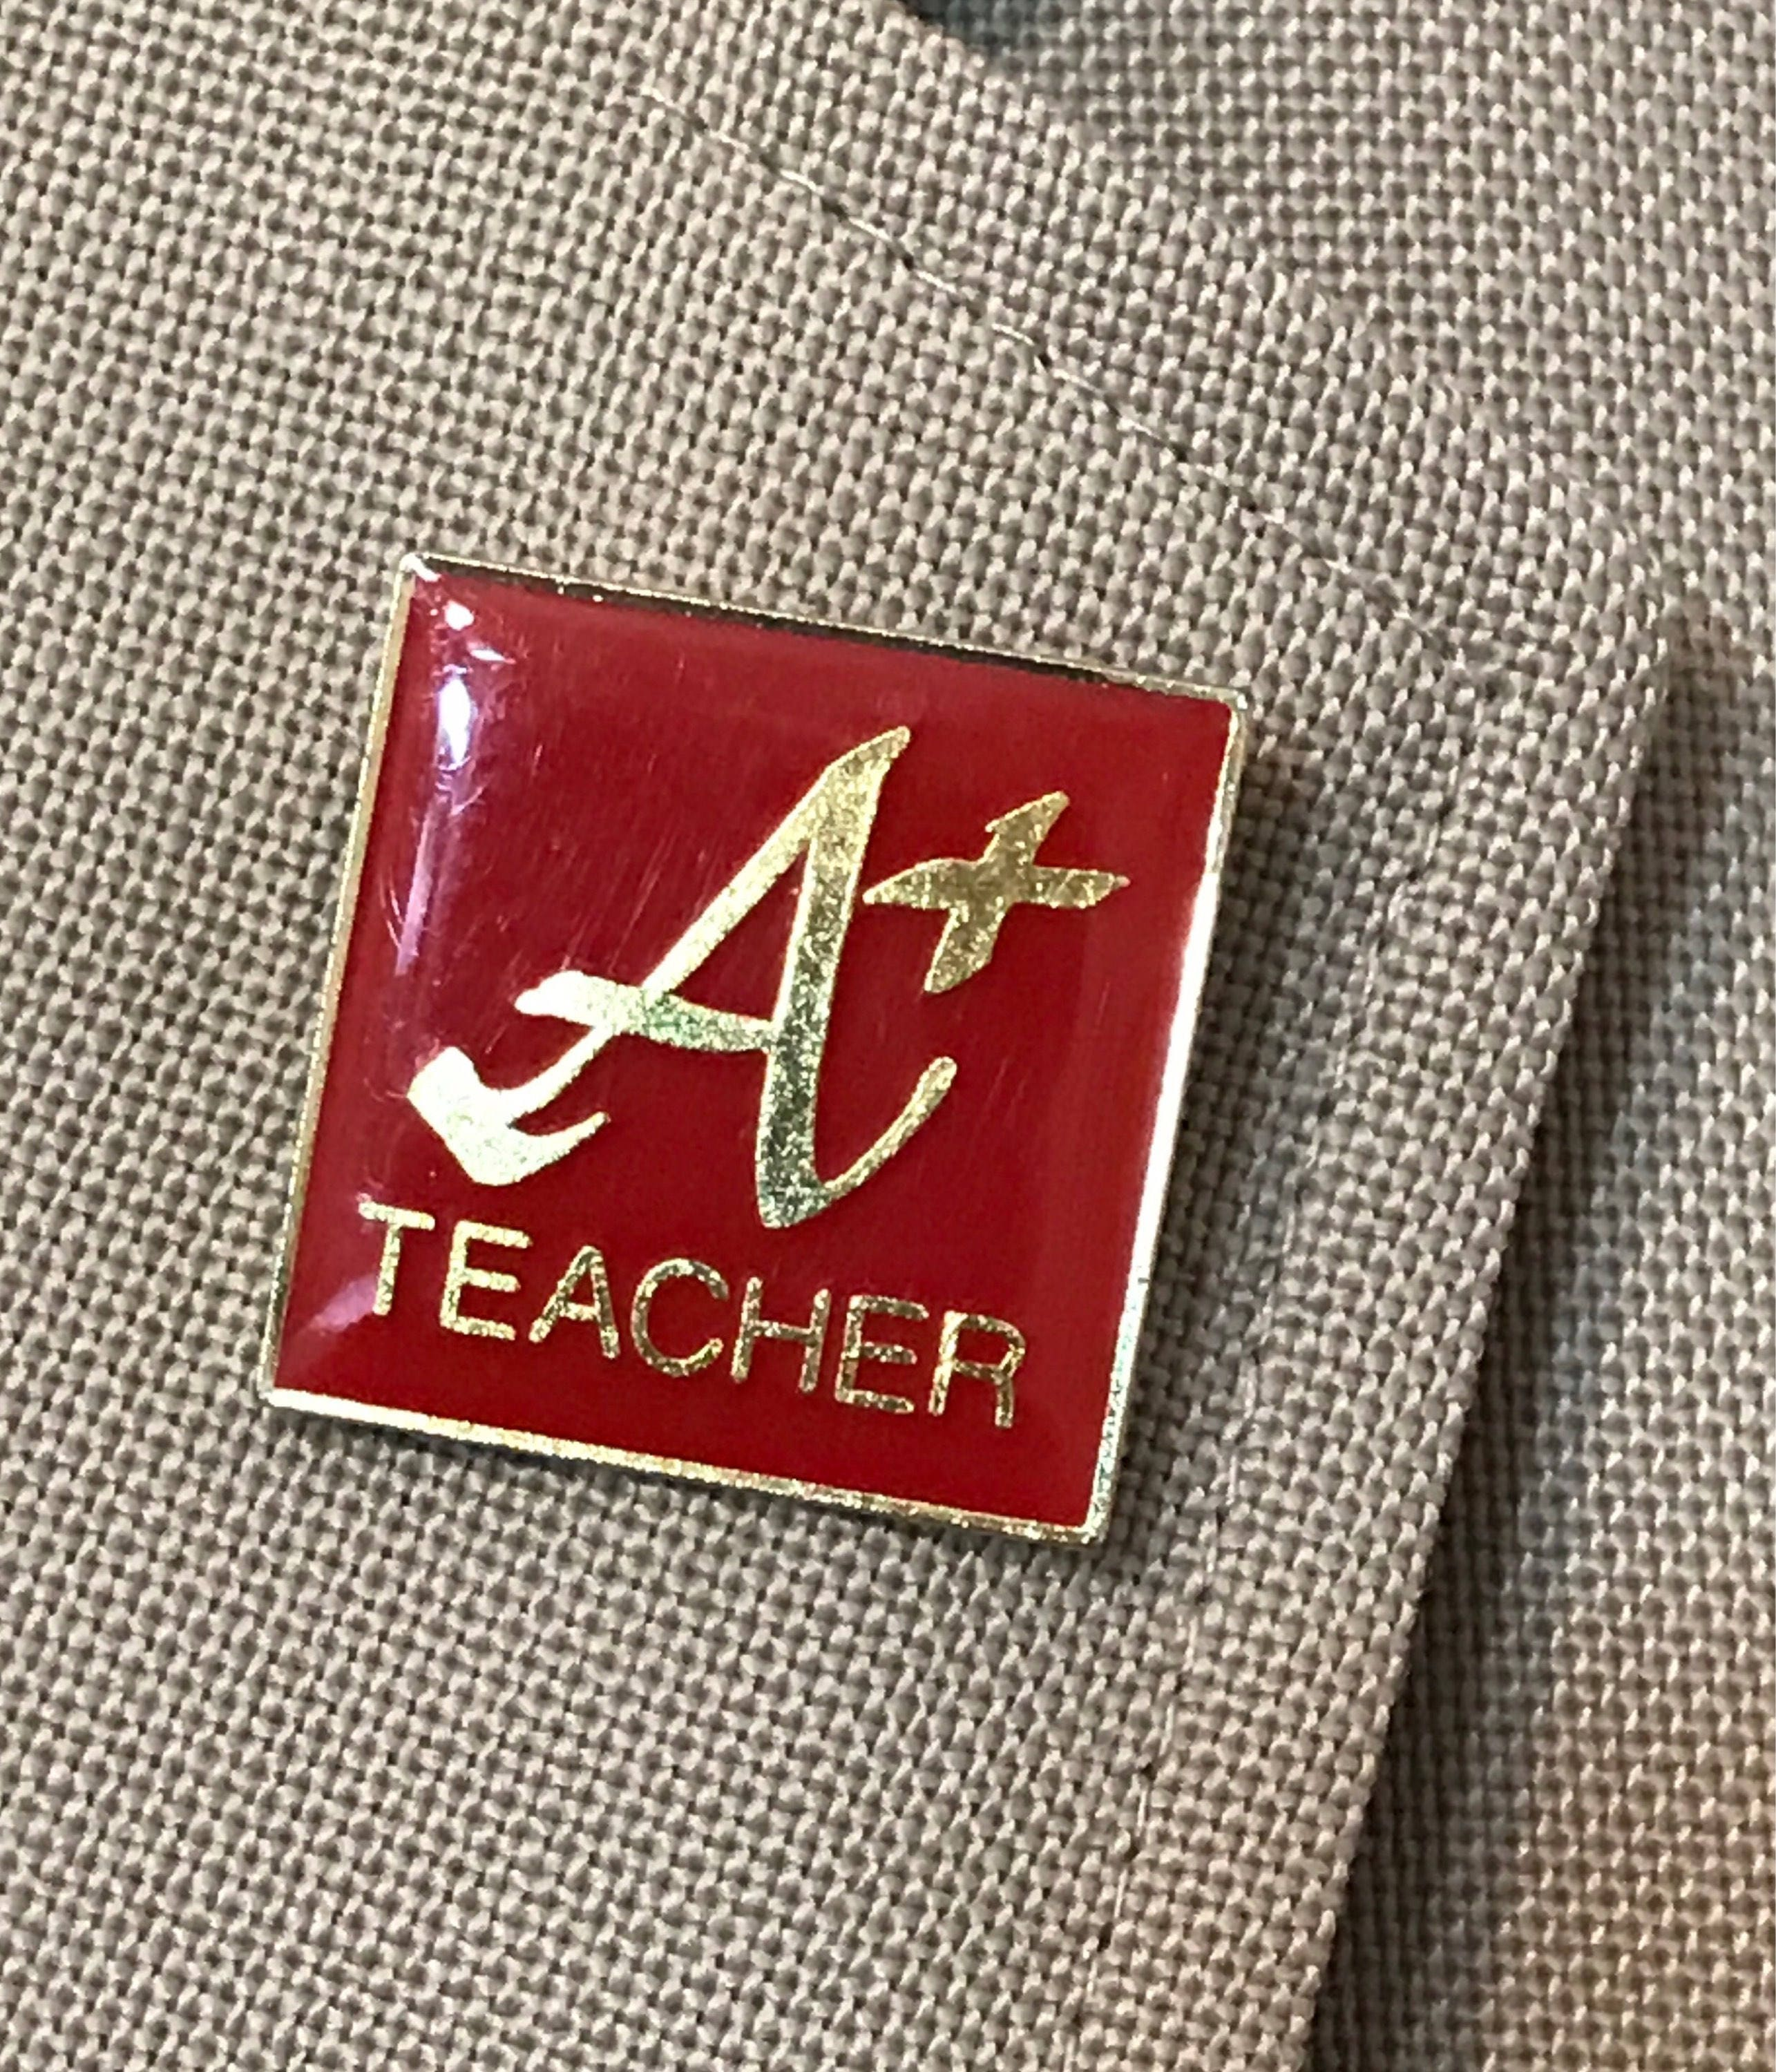 Vintage A Plus Teacher Lapel Pin Signed Agc American Greeting